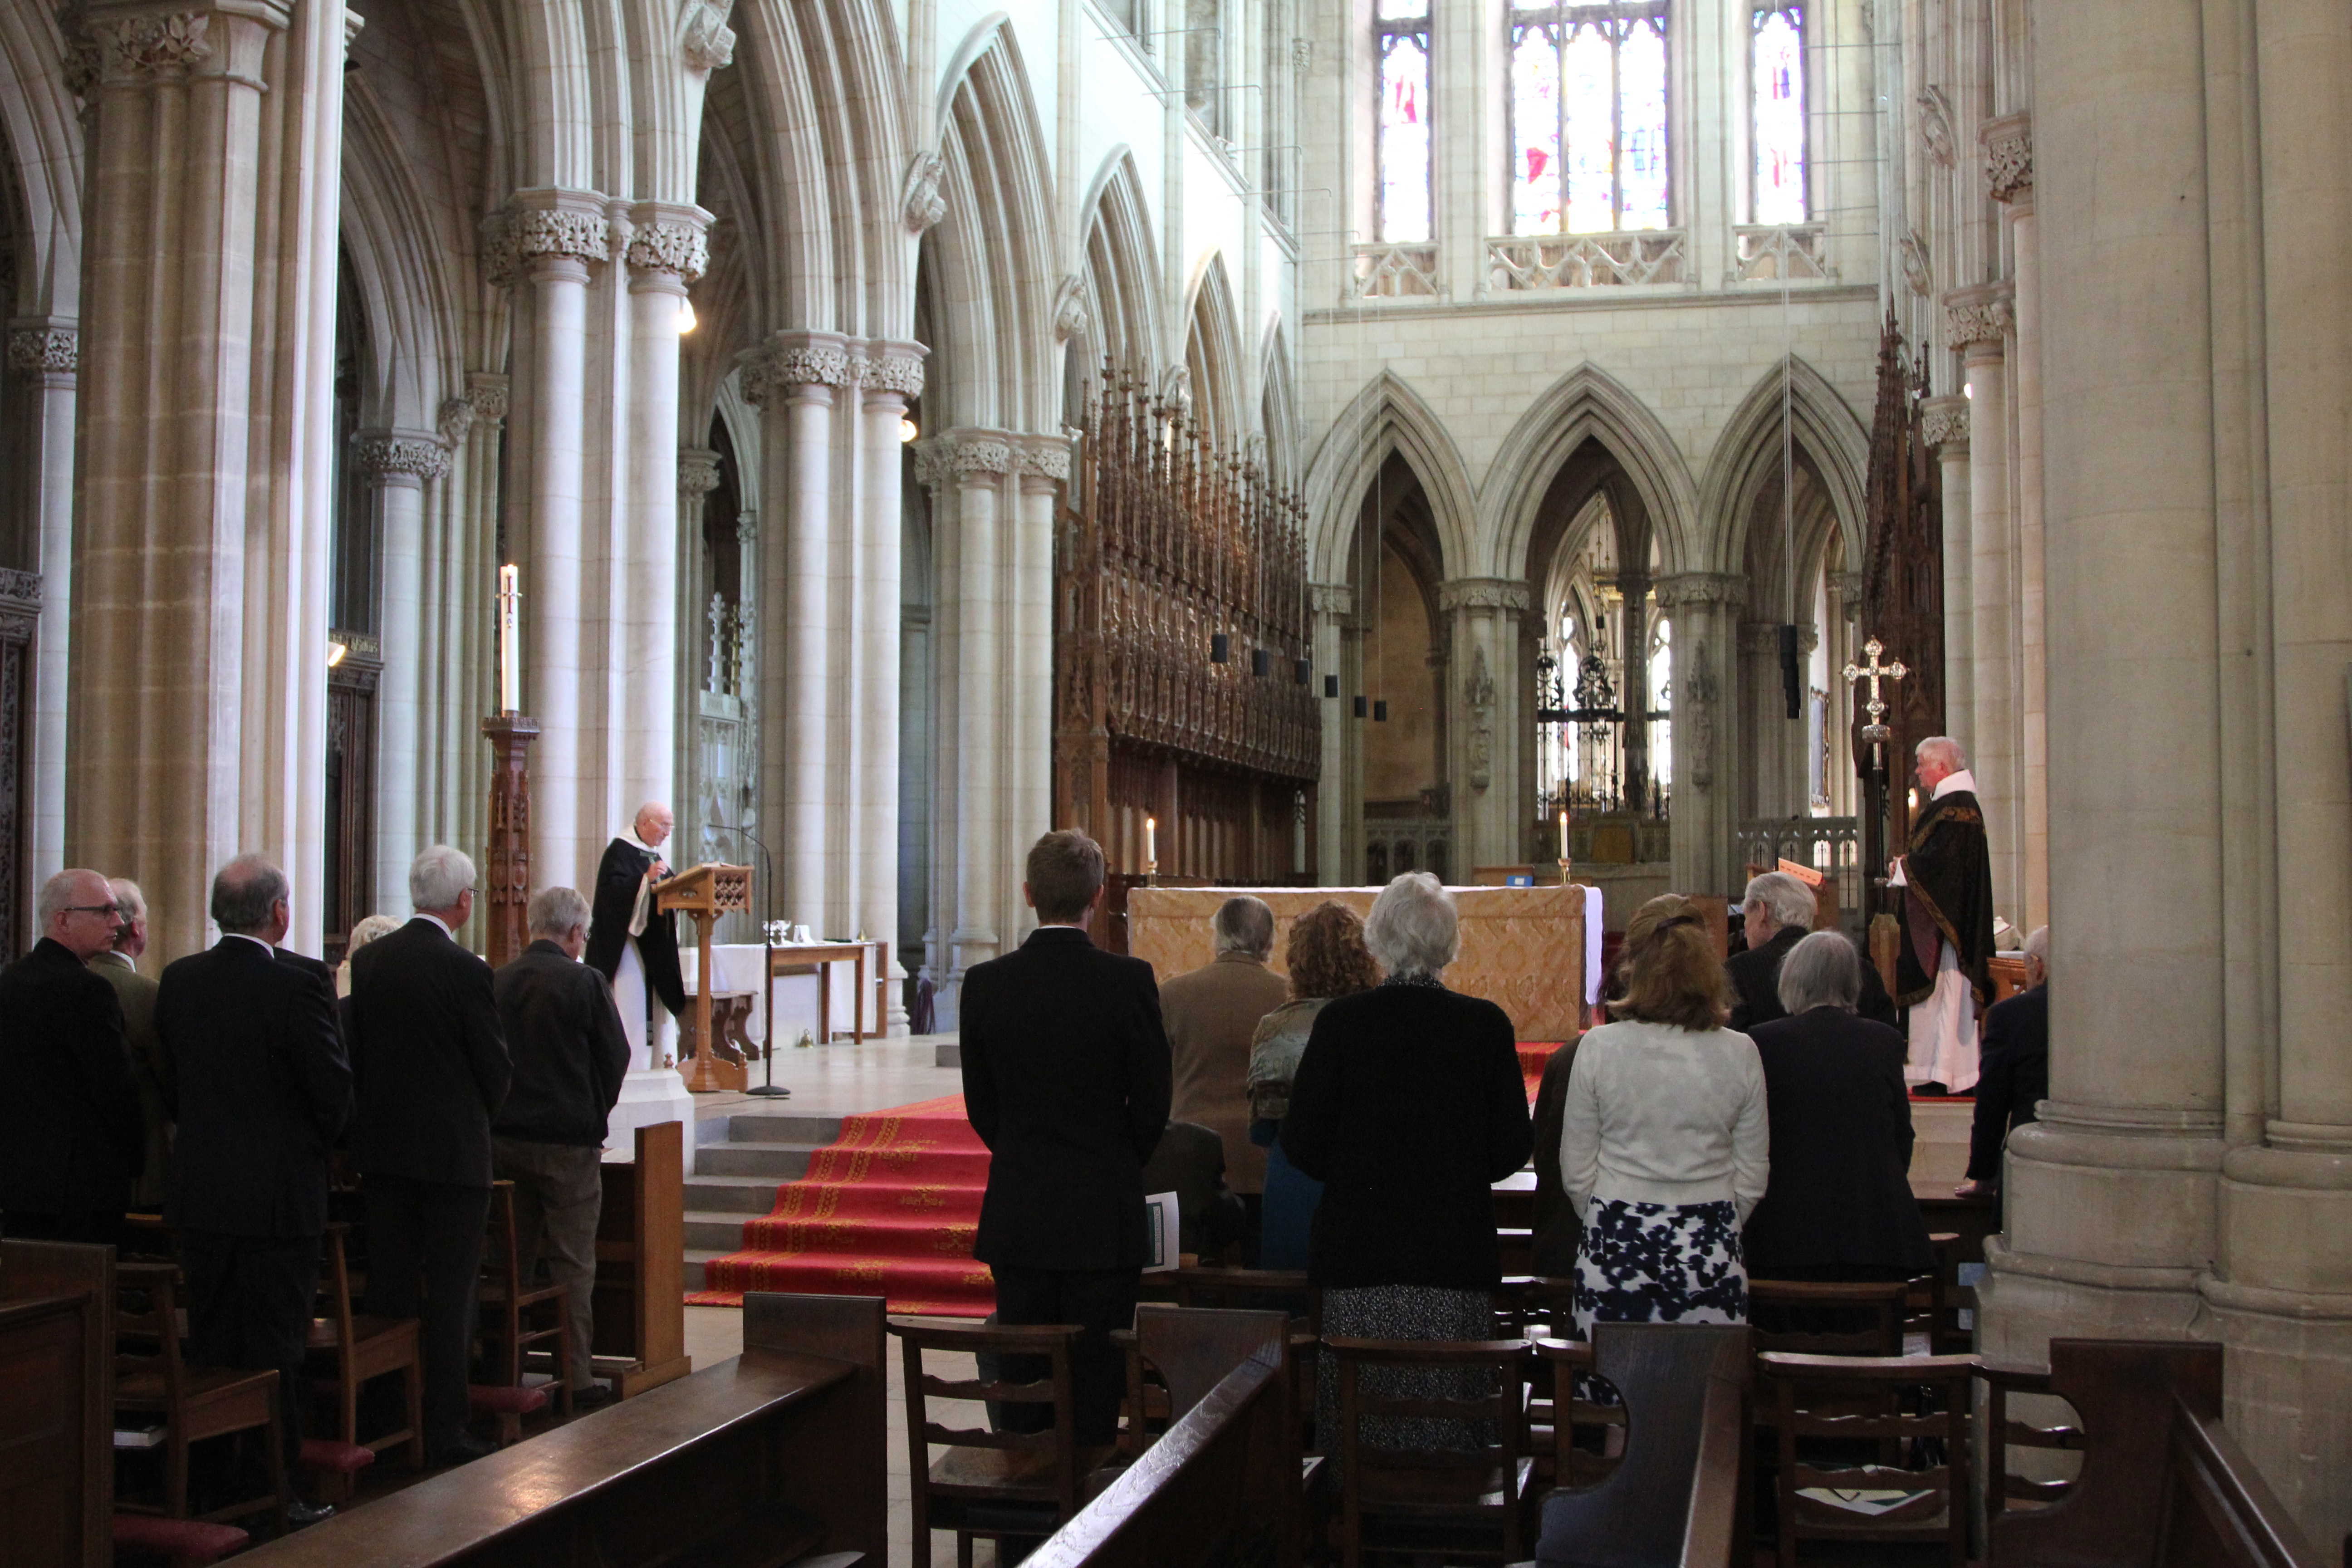 Memorial ceremony in Abbey